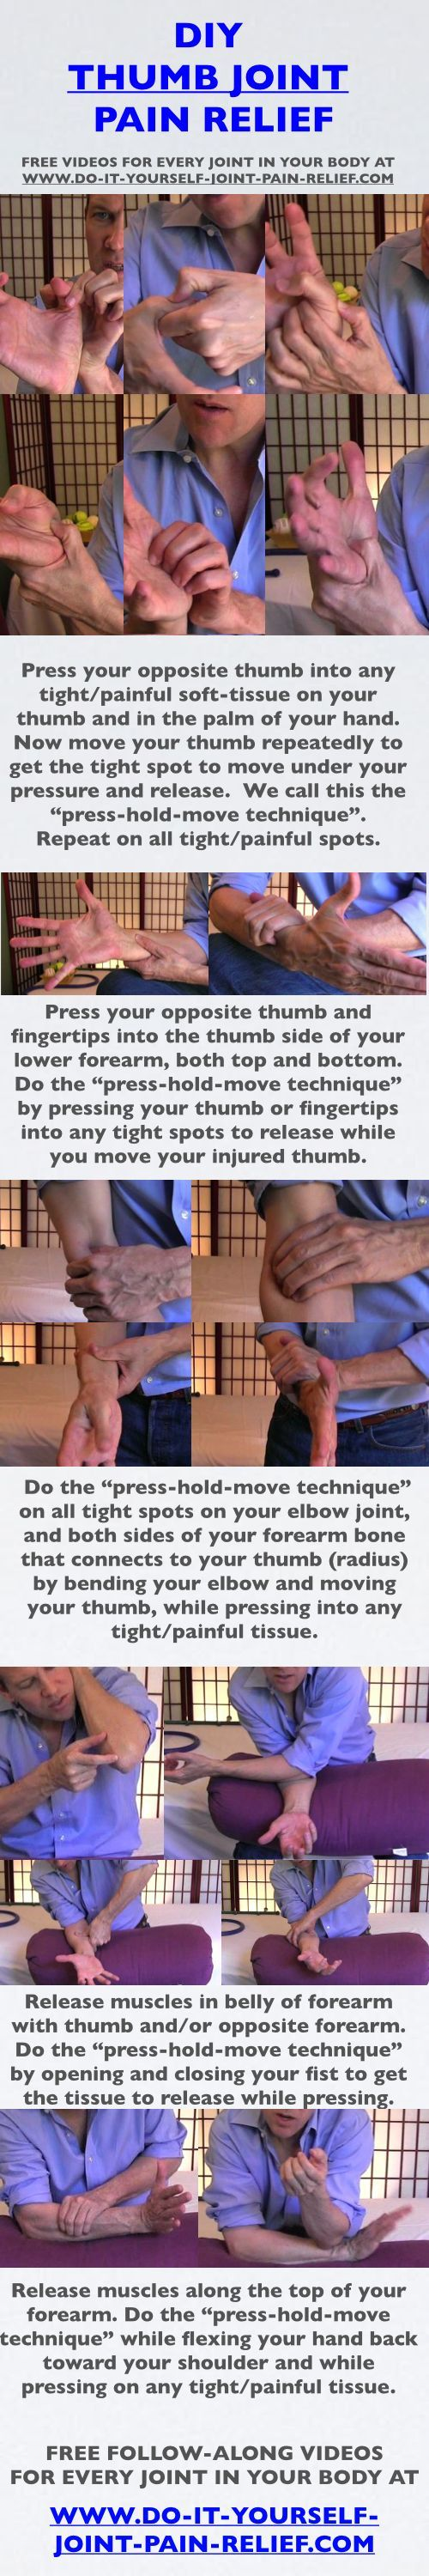 """This """"Thumb Joint Pain Relief Cheat Sheet"""" is for anybody with a painful thumb...Texter-itis, iPad-itis, etc. or any thumb injury where the bone is not currently broken. As always, Share it, Post it, Pin It, wherever you think it might help people. FREE follow-along videos of these techniques at http://www.do-it-yourself-joint-pain-relief.com/thumb-joint-pain-relief.html"""